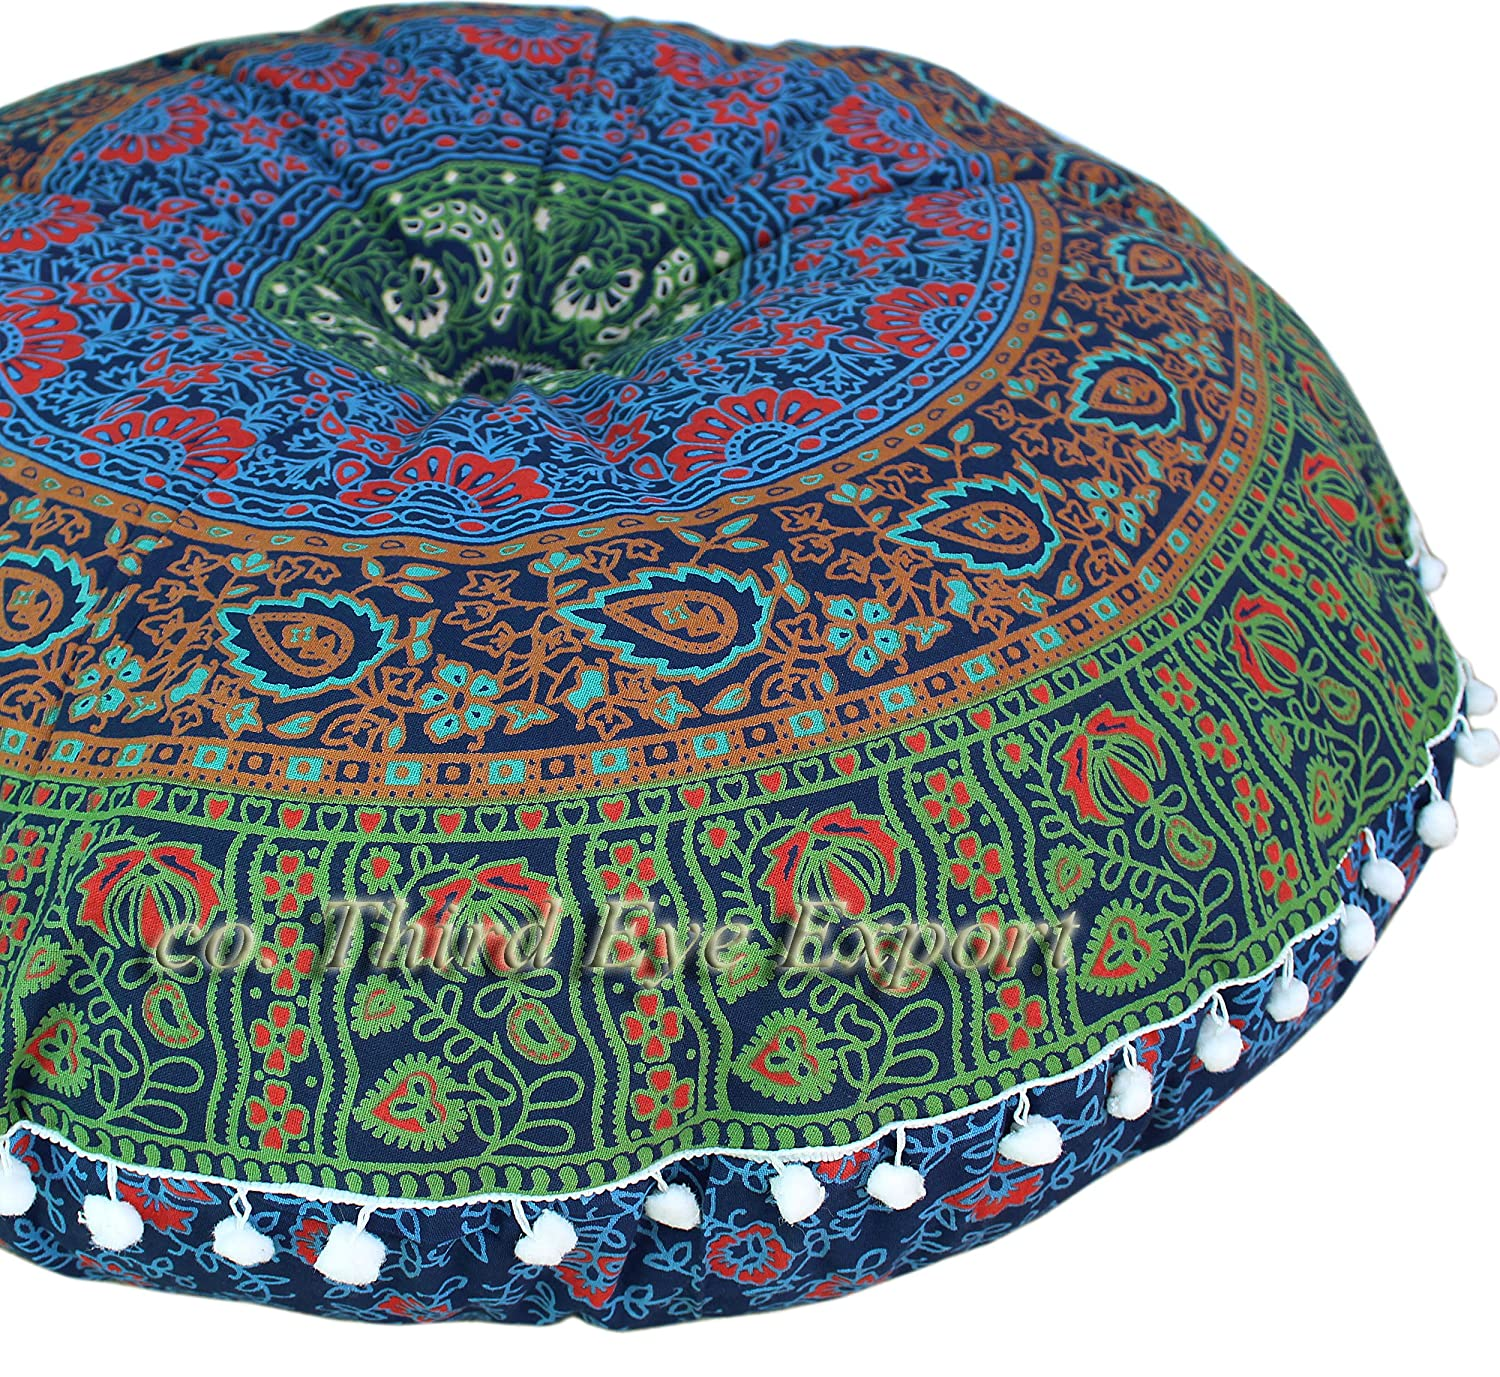 Third Eye Export - 32 In Mandala Barmeri Large Round Floor Pillow Cover Cushion Meditation Seating Ottoman Throw Cover Hippie Decorative Zipped Bohemian Pouf (Purple) FPL-BAR-PPL-1